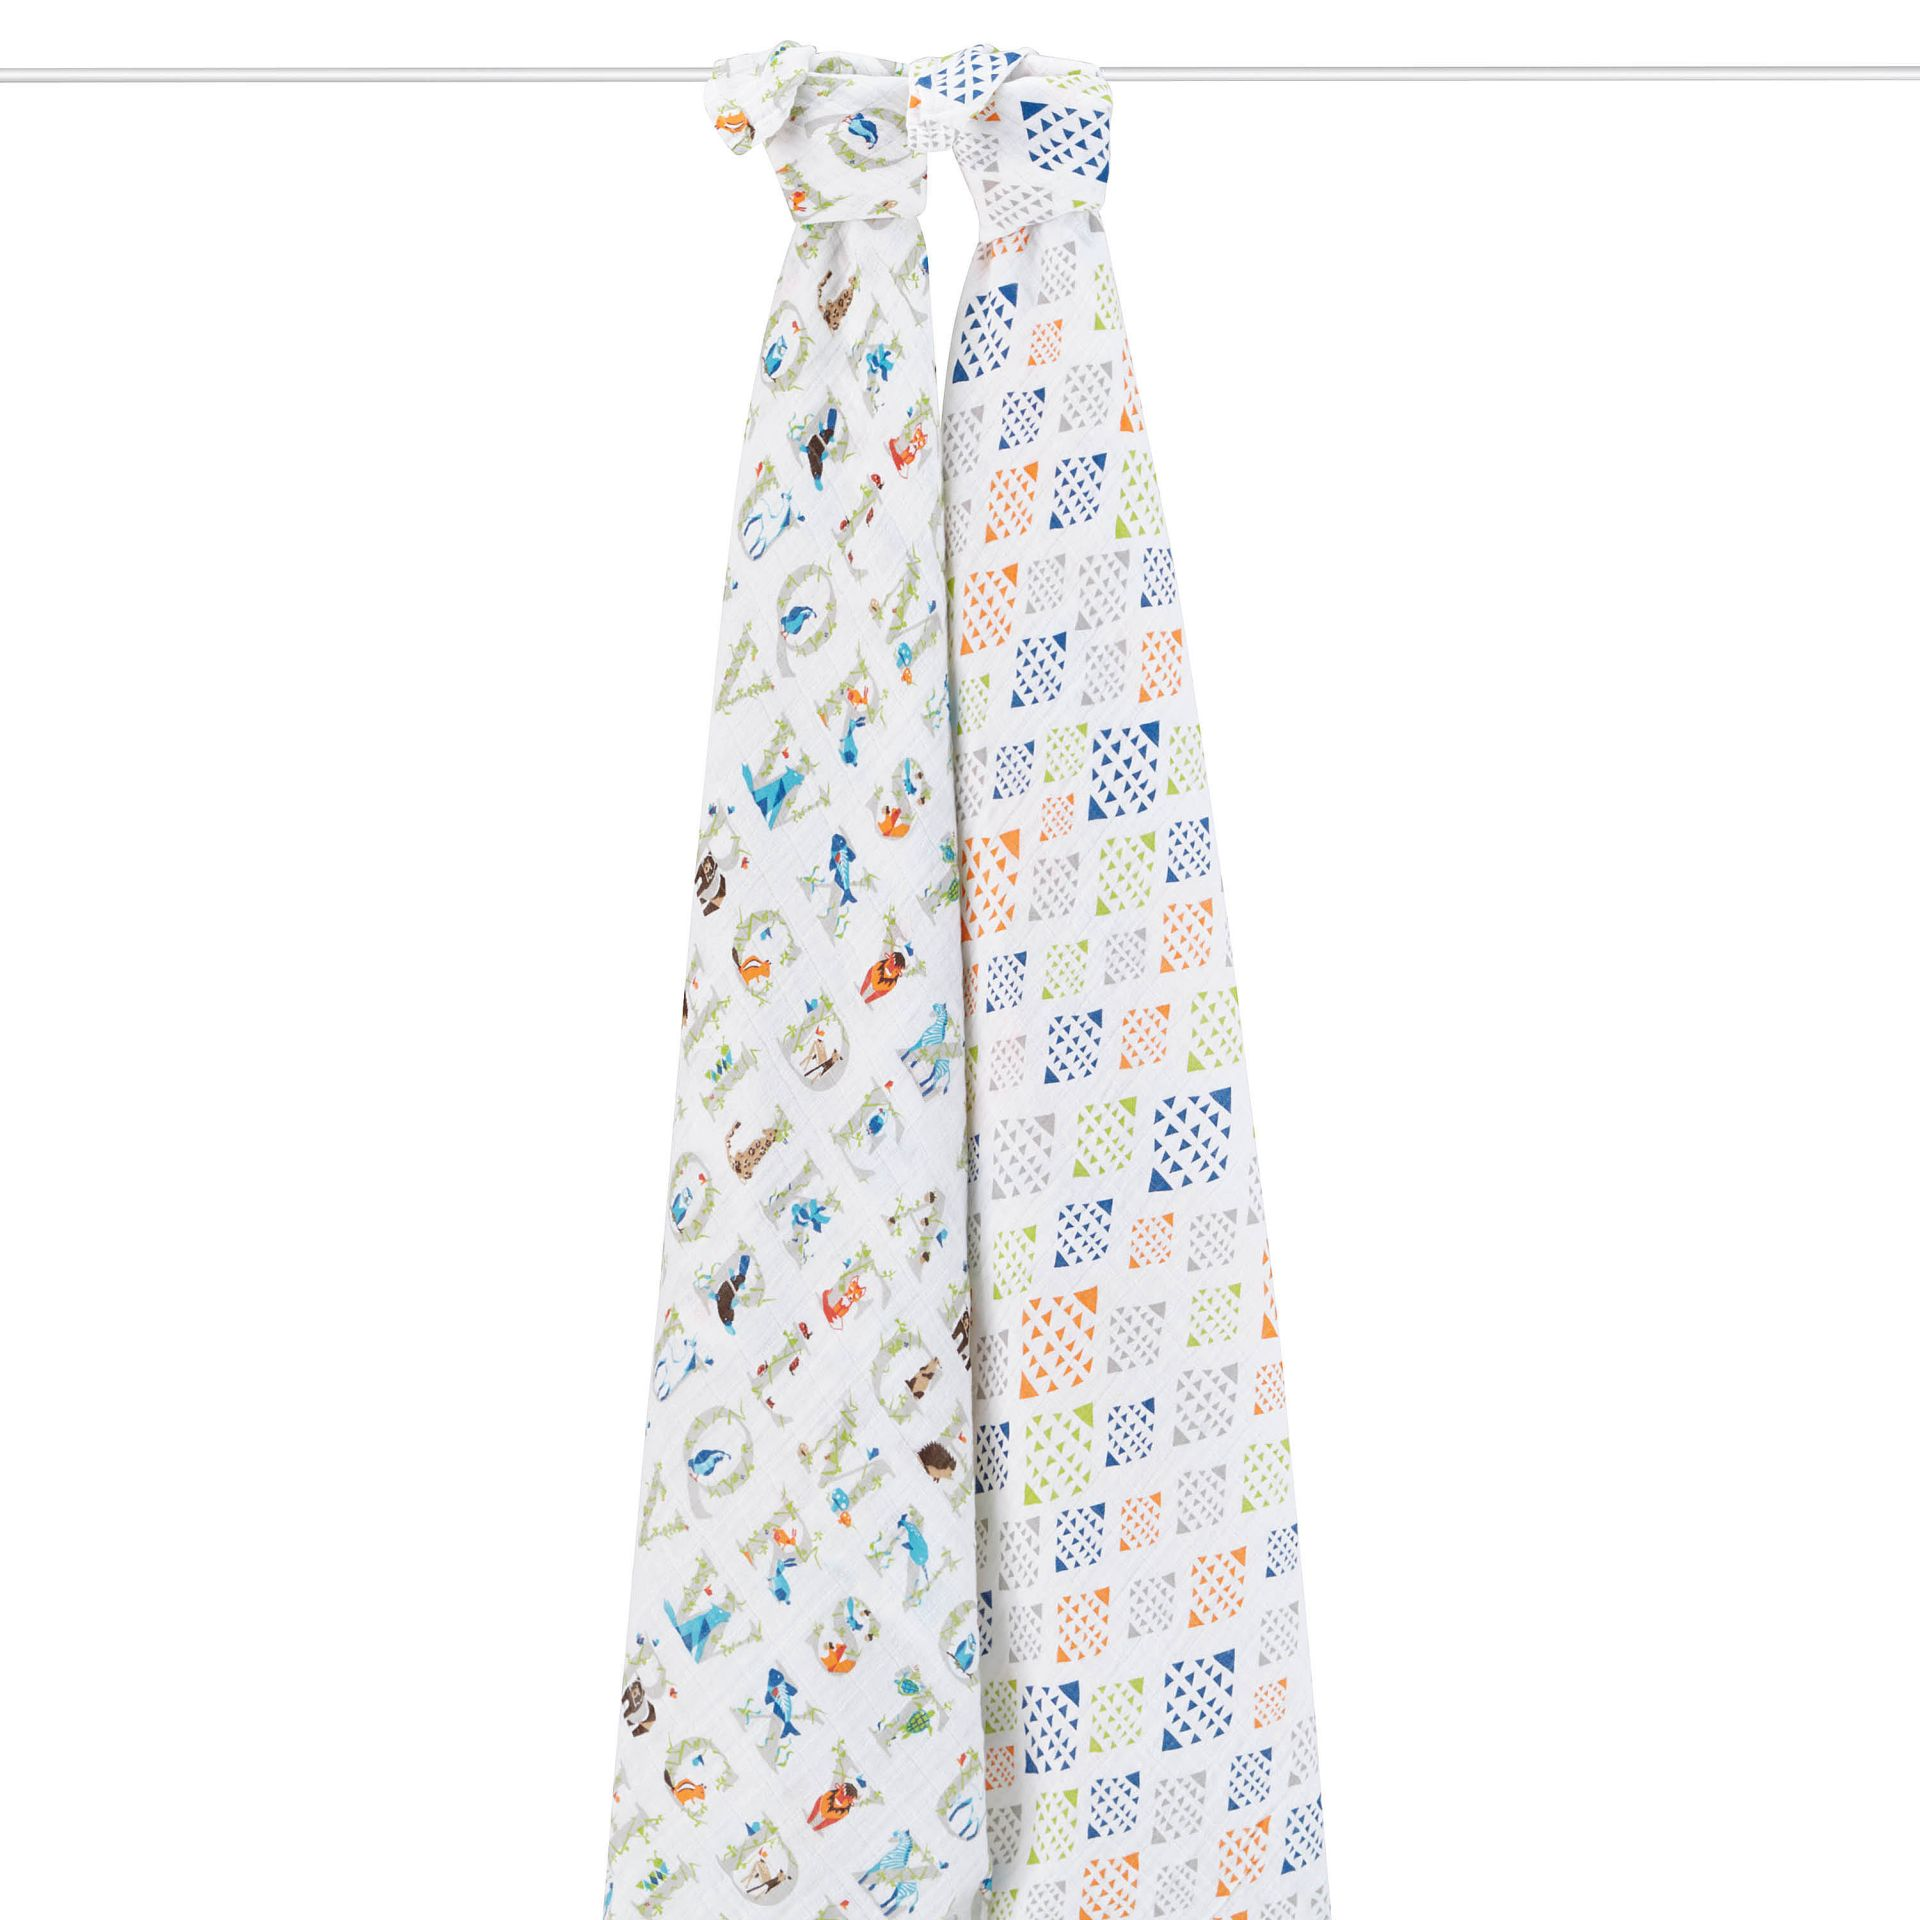 Aden Anais Classic Swaddle 2 Pack 2017 Paper Tales Buy